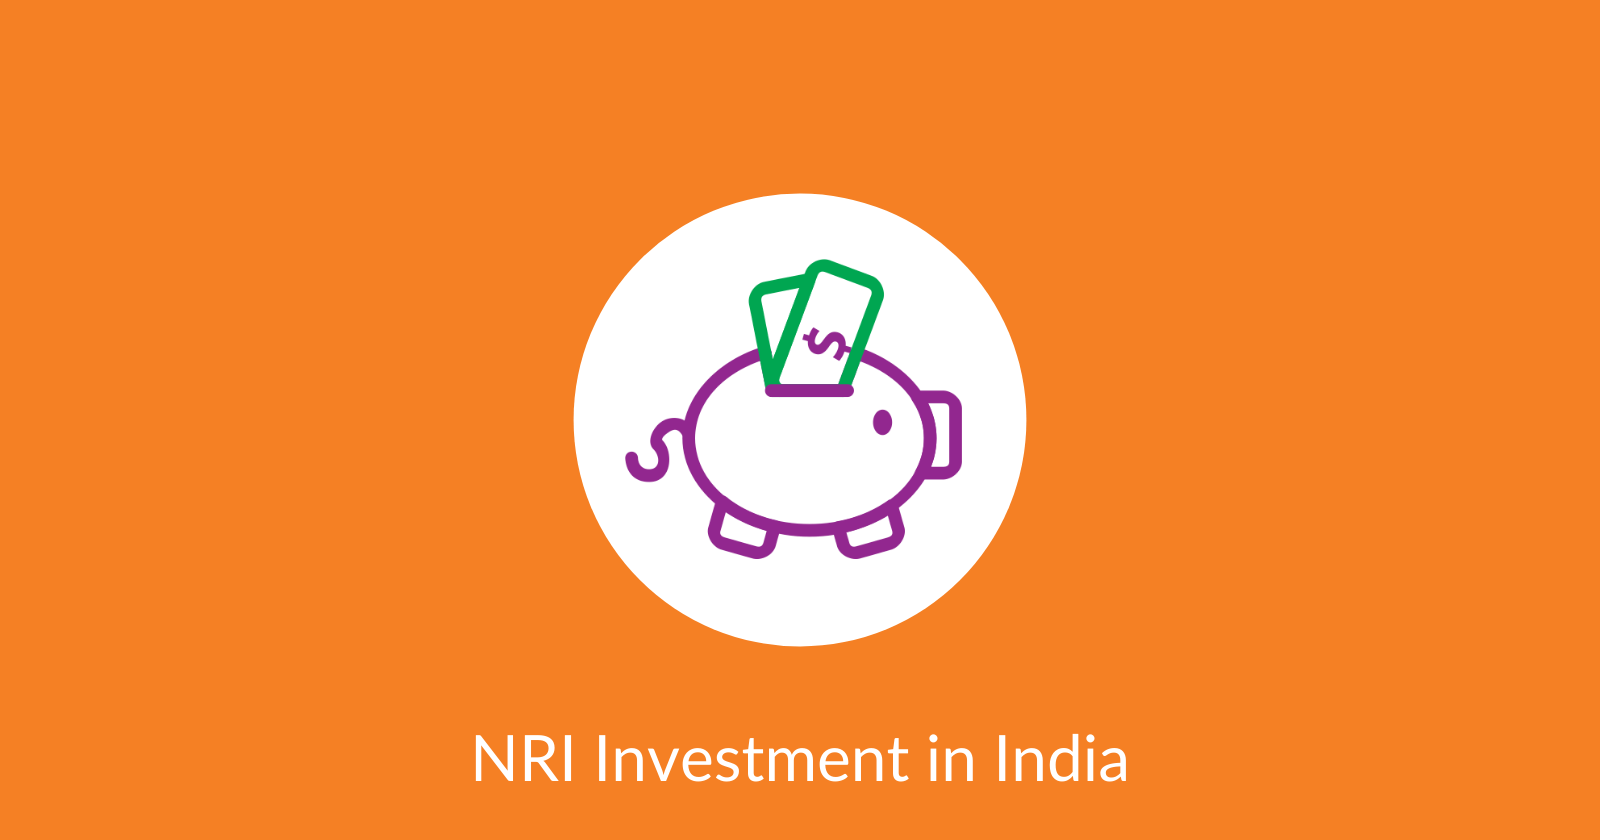 NRI Investment in India